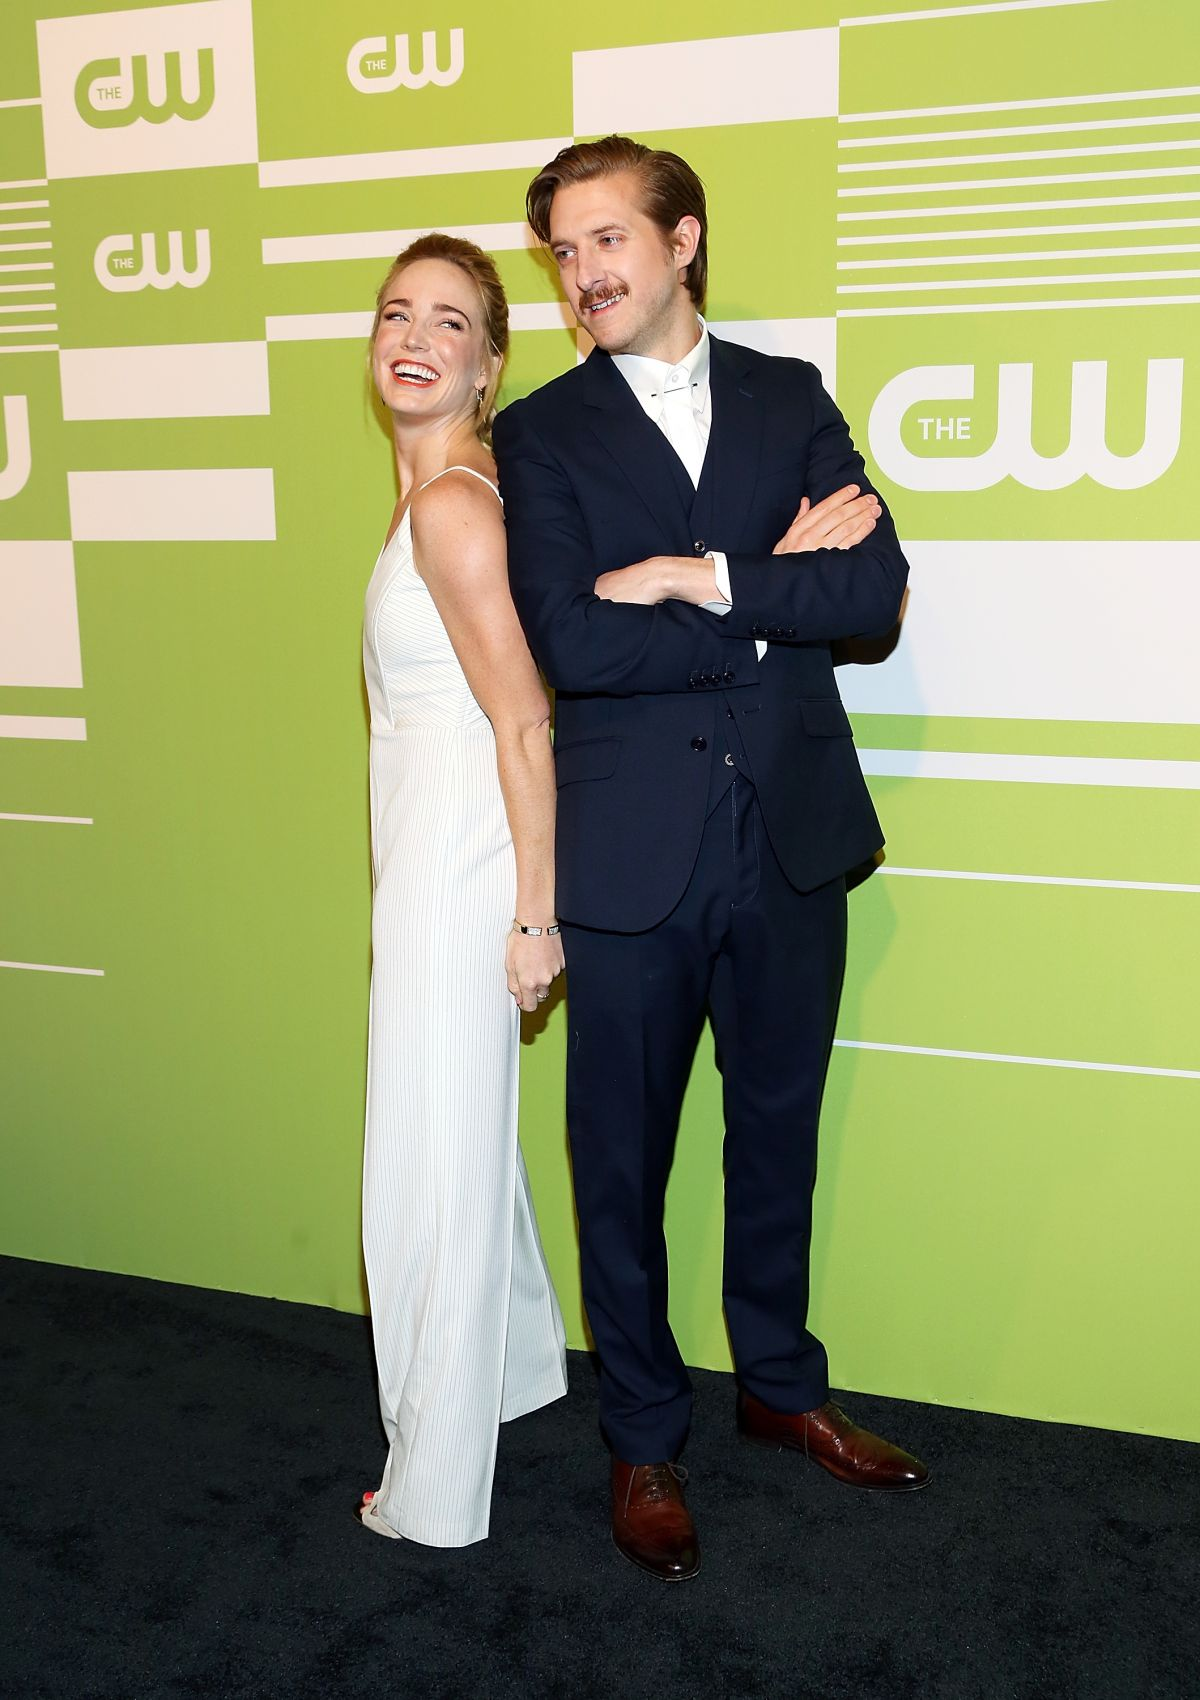 Caity Lotz - The CW Networks 2015 Upfront in New York